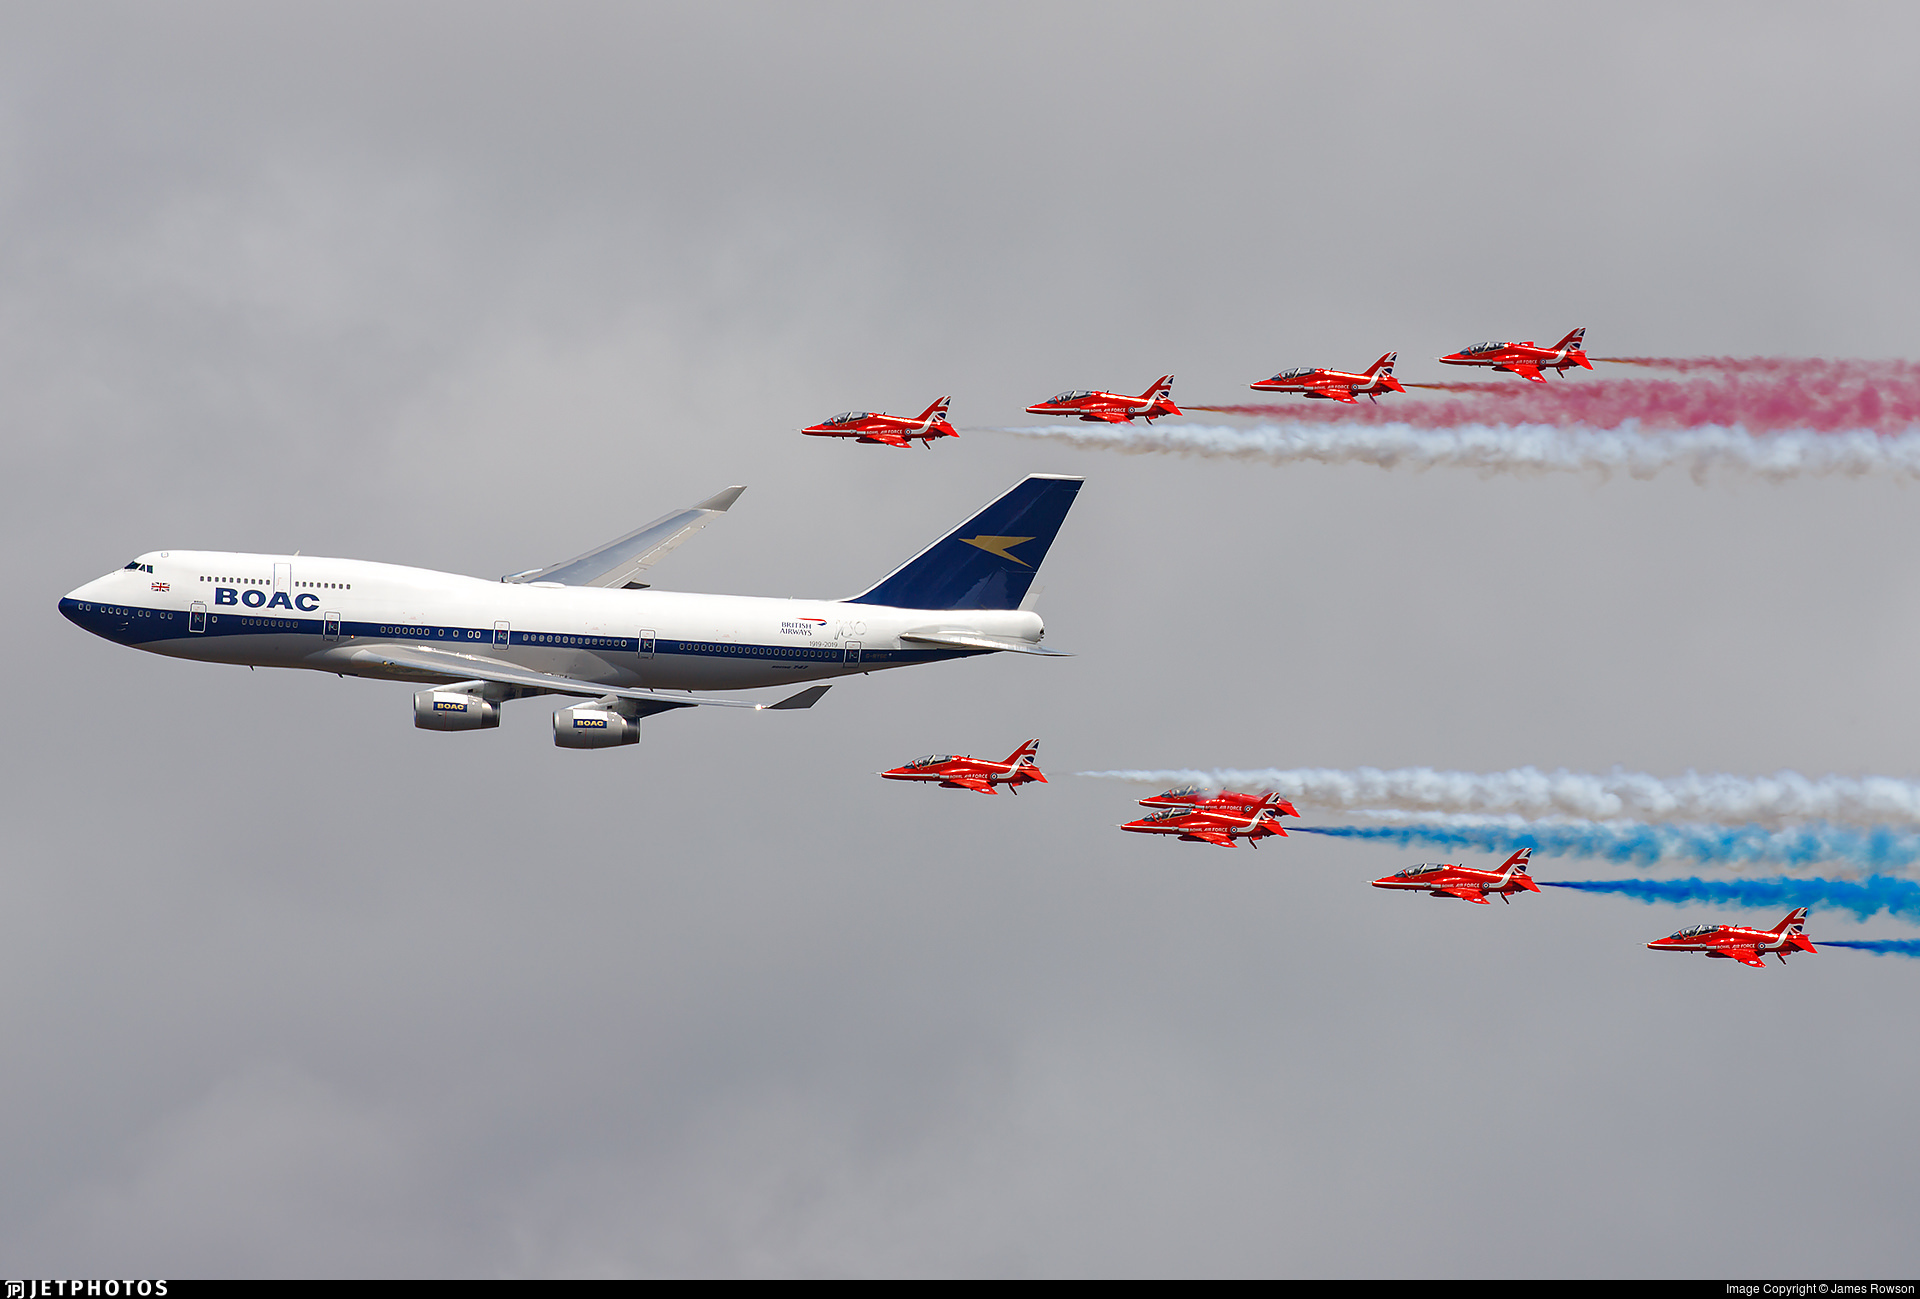 BOAC heritage livery British Airways 747 flying in formation with the RAF Red Arrows